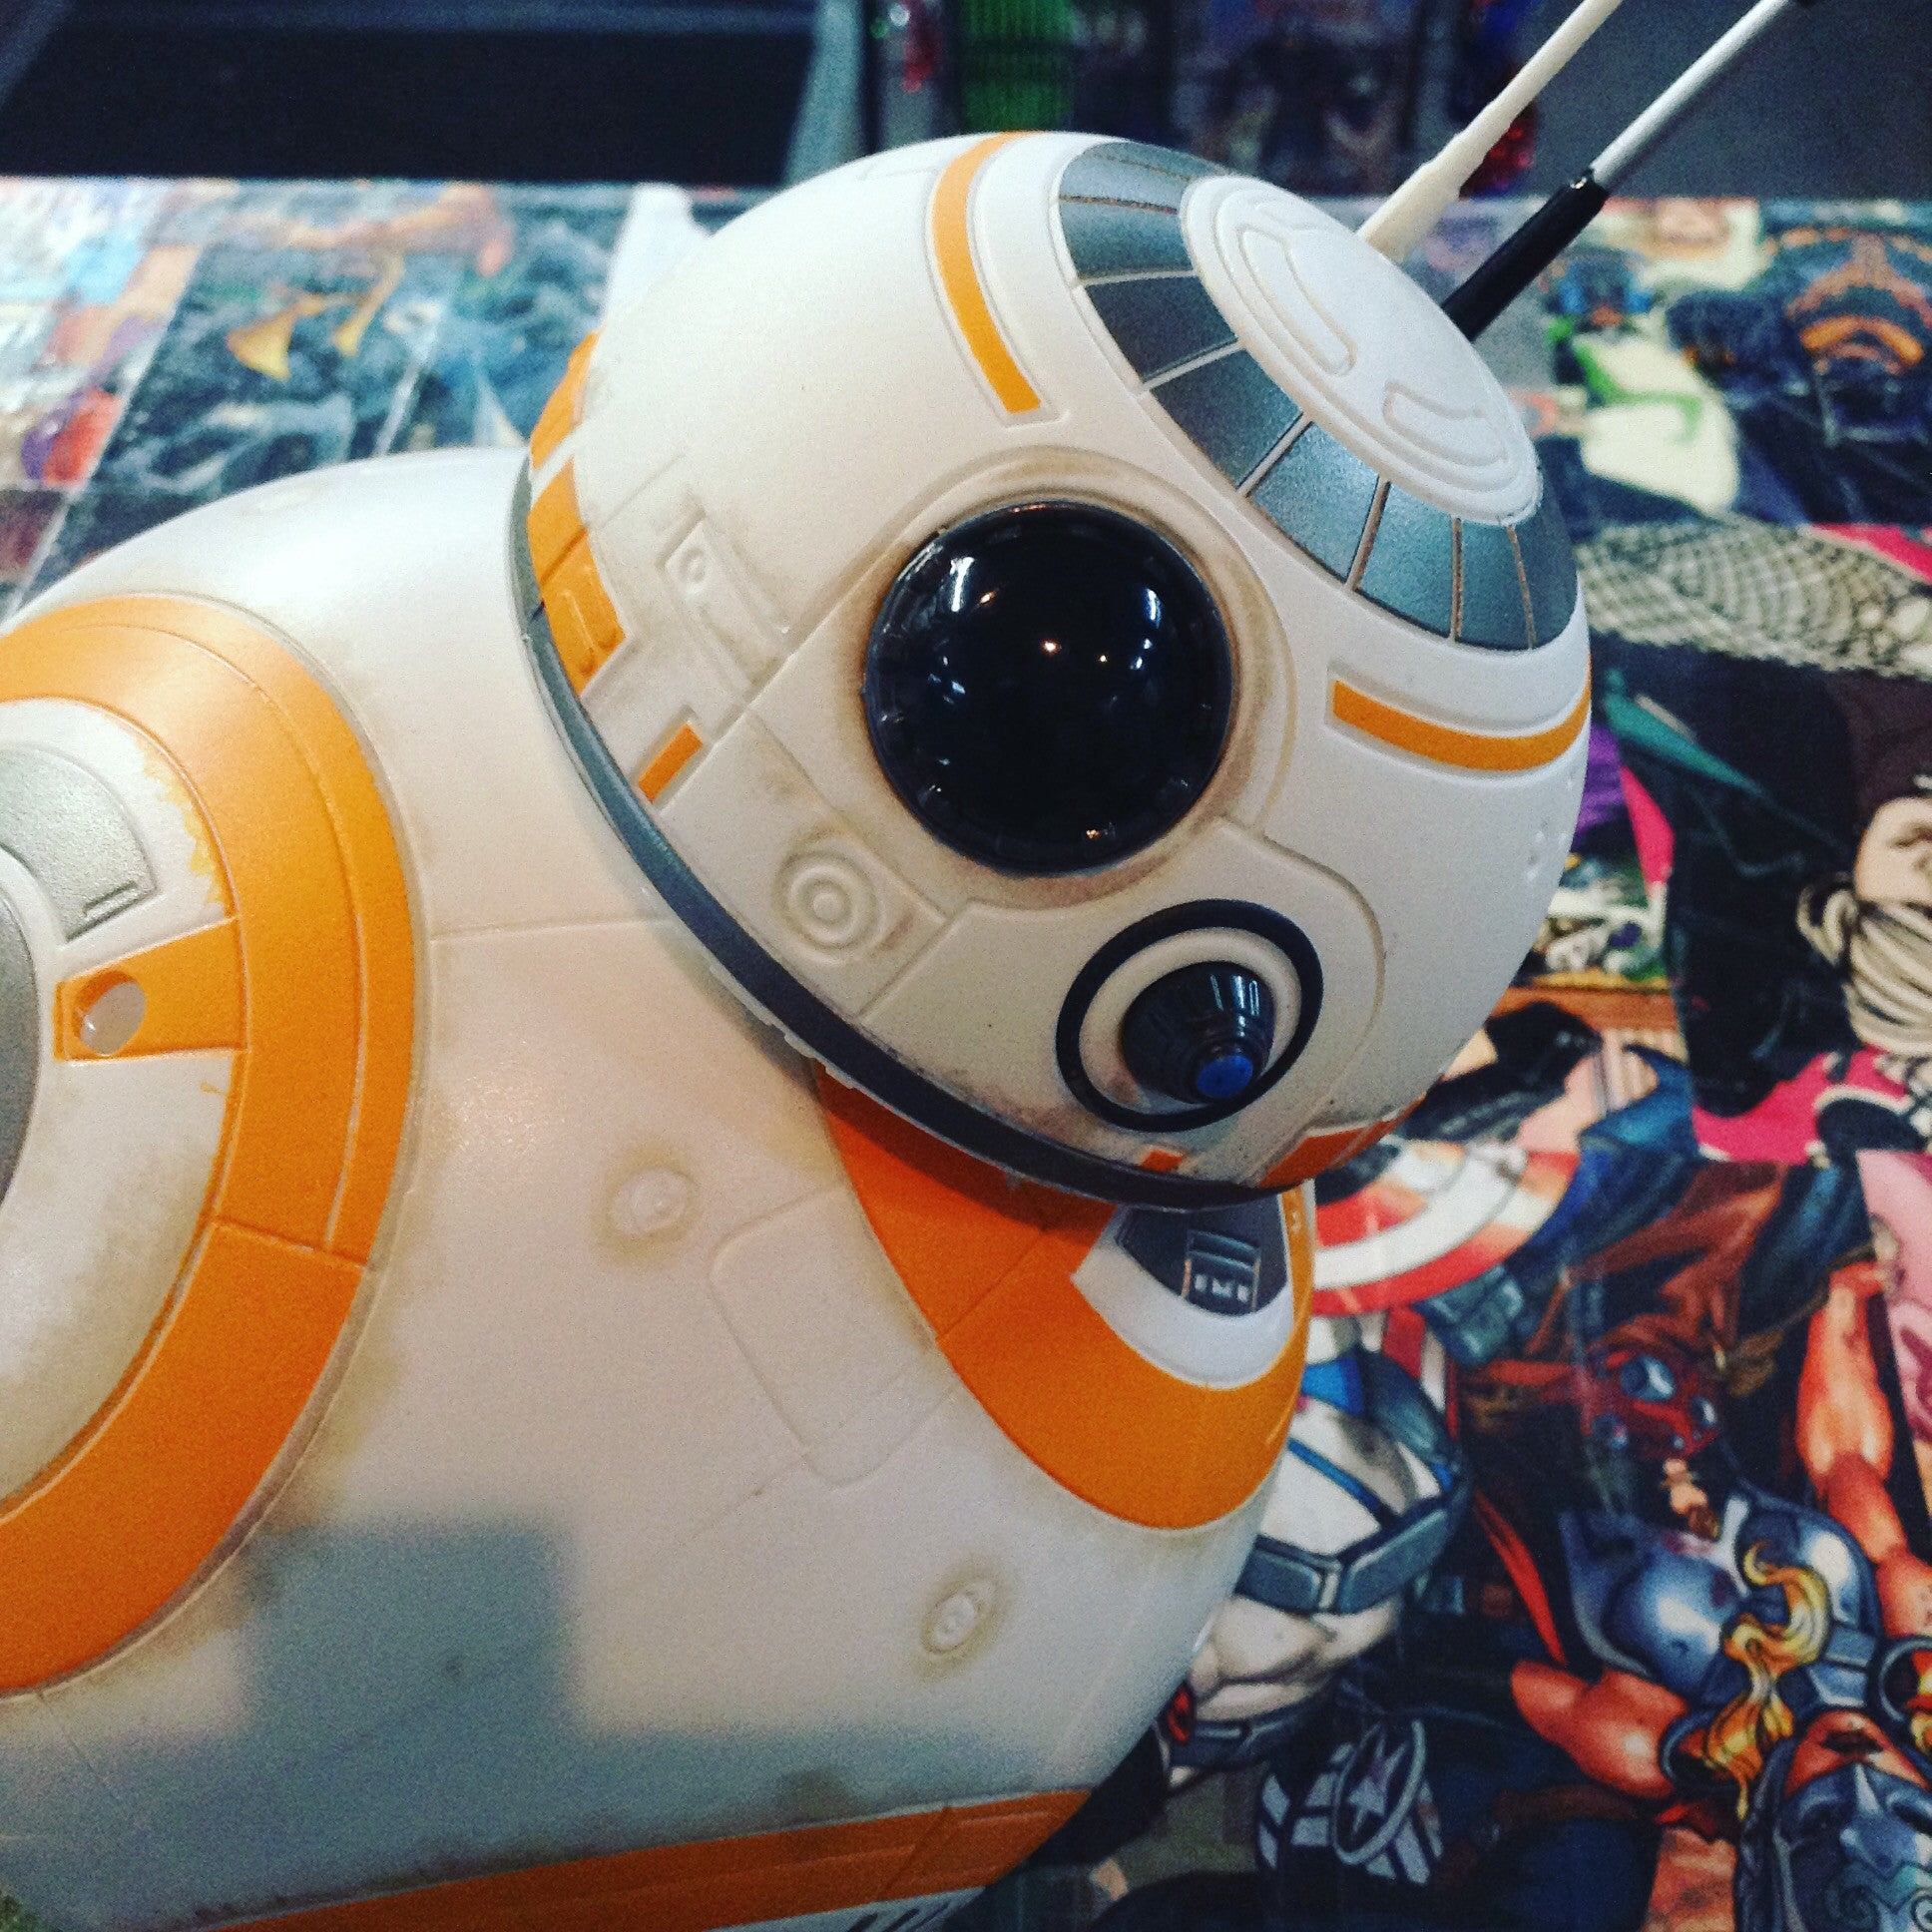 Bb8-Firgurines-Multizone: Comics And Games | Multizone: Comics And Games